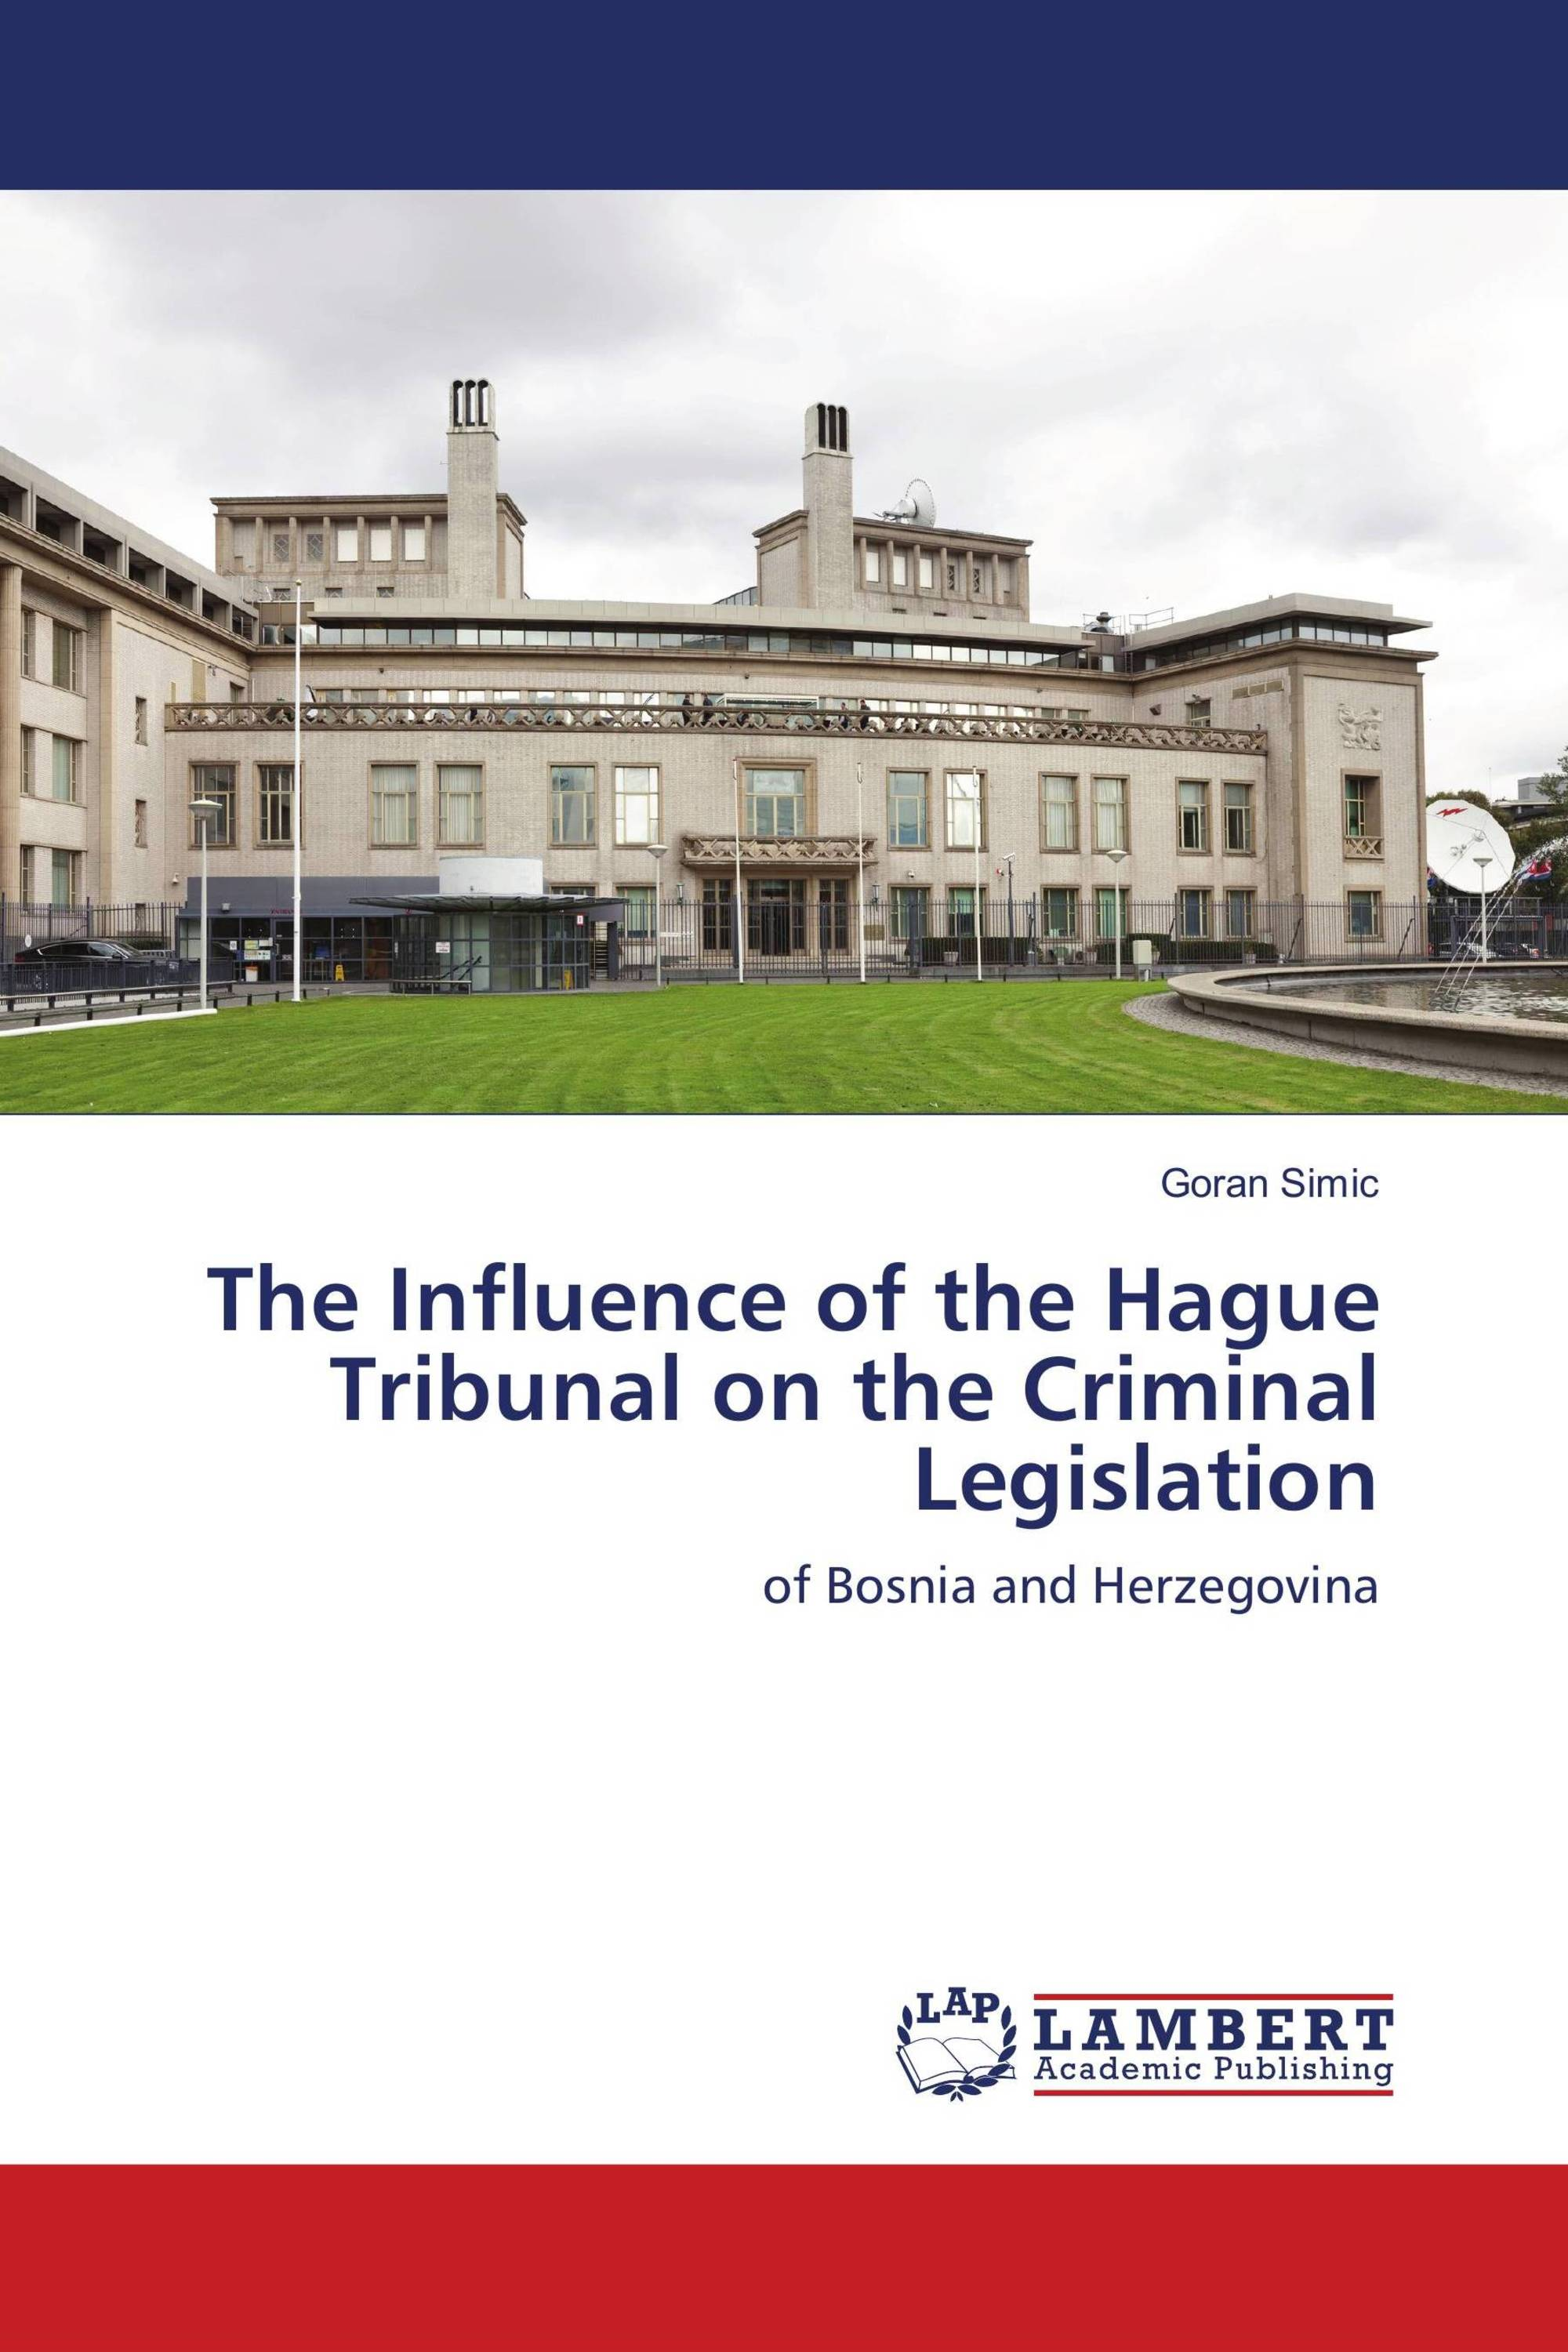 The Influence of the Hague Tribunal on the Criminal Legislation